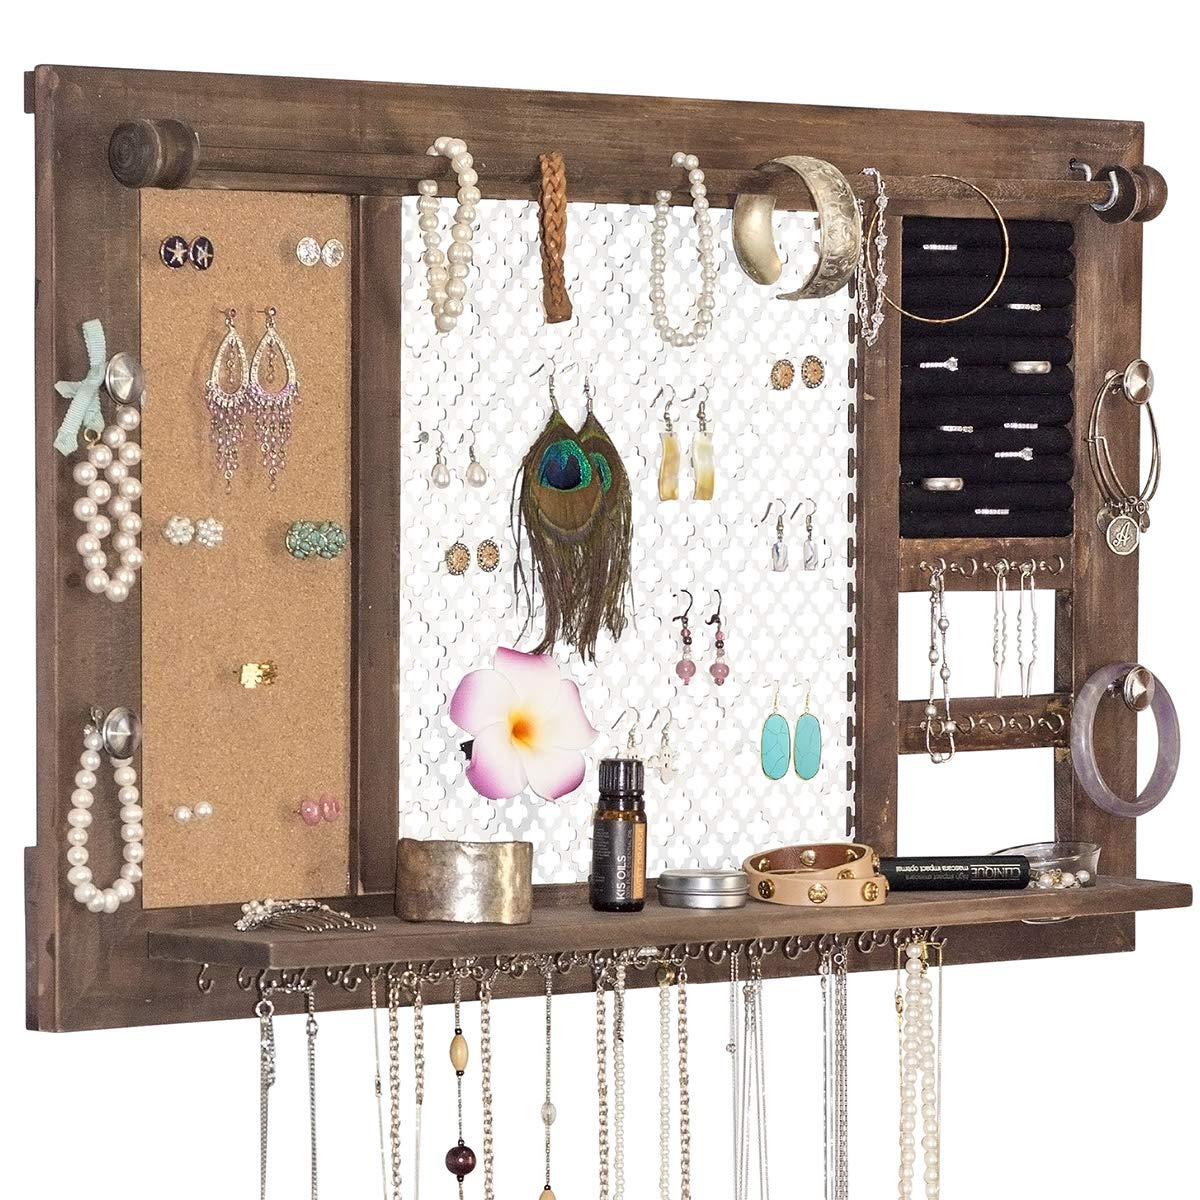 SoCal Buttercup Deluxe Rustic Wood Jewelry Organizer - from Hanging Wall Mounted Wooden Jewelry Display - Organizer for Earrings, Necklaces, Bracelets, Studs, and Accessories by SoCal Buttercup (Image #1)